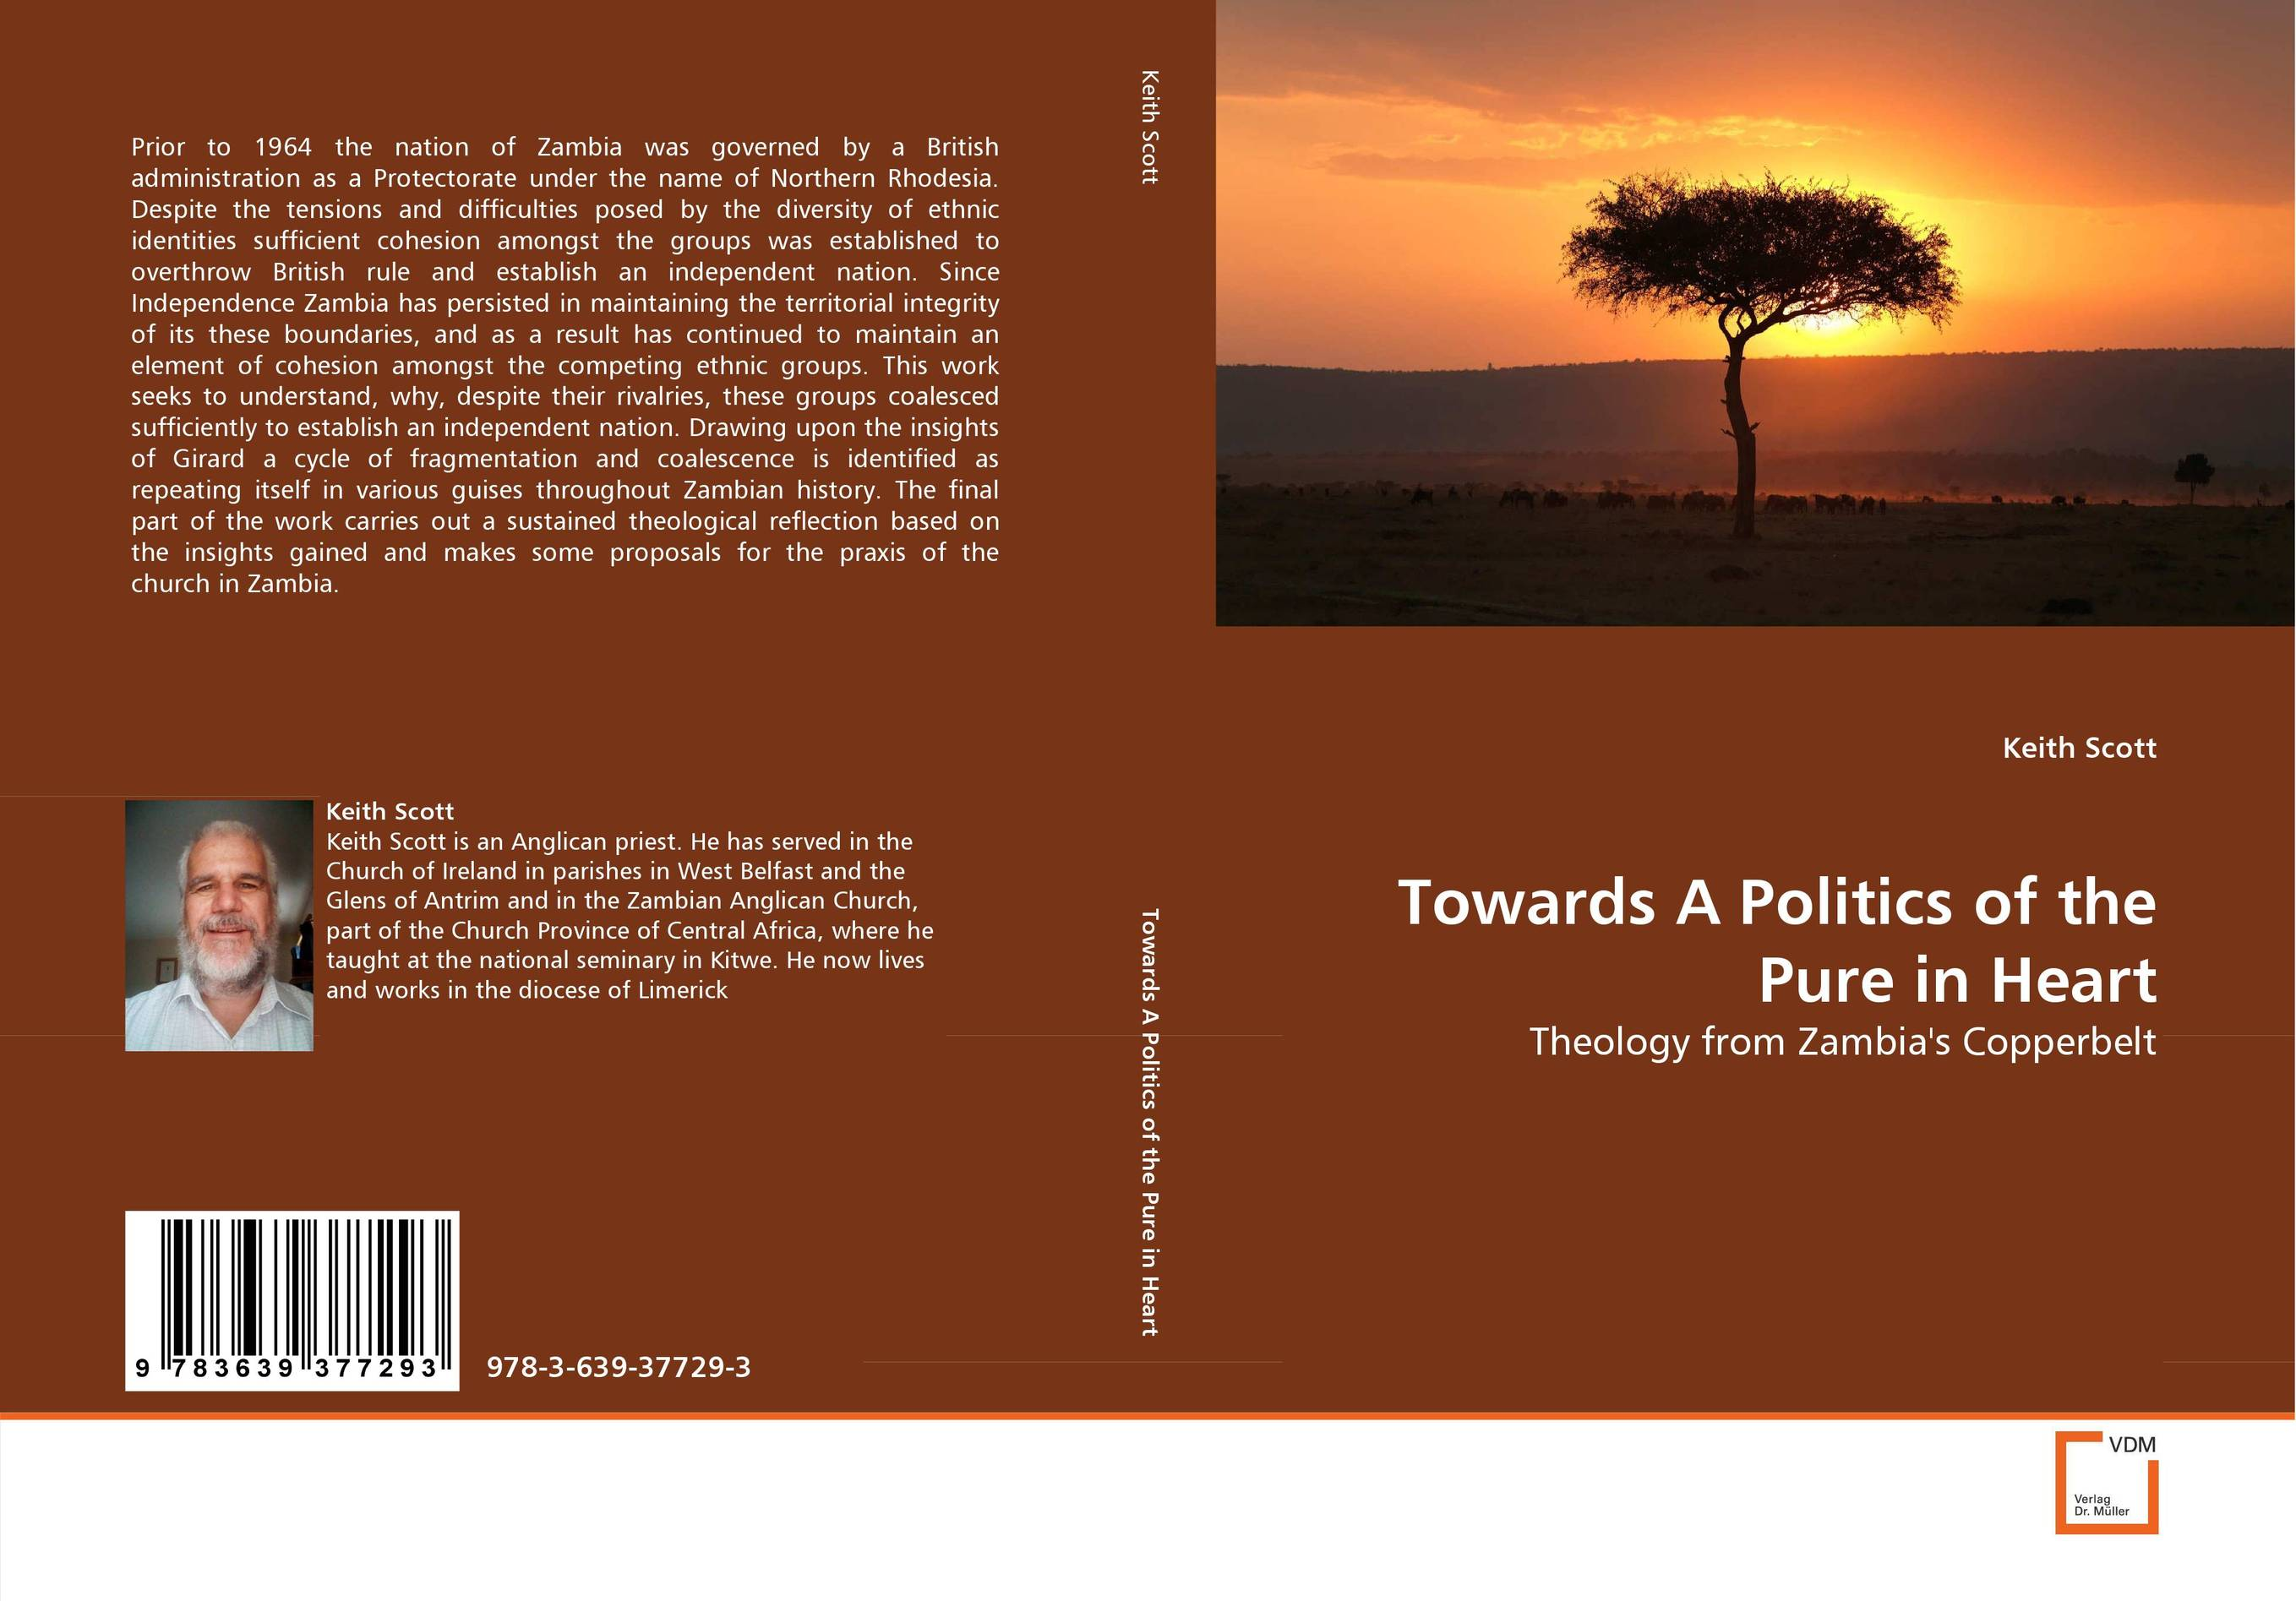 Towards A Politics of the Pure in Heart алеся джиоева insights into politics and the language of politics a course of english